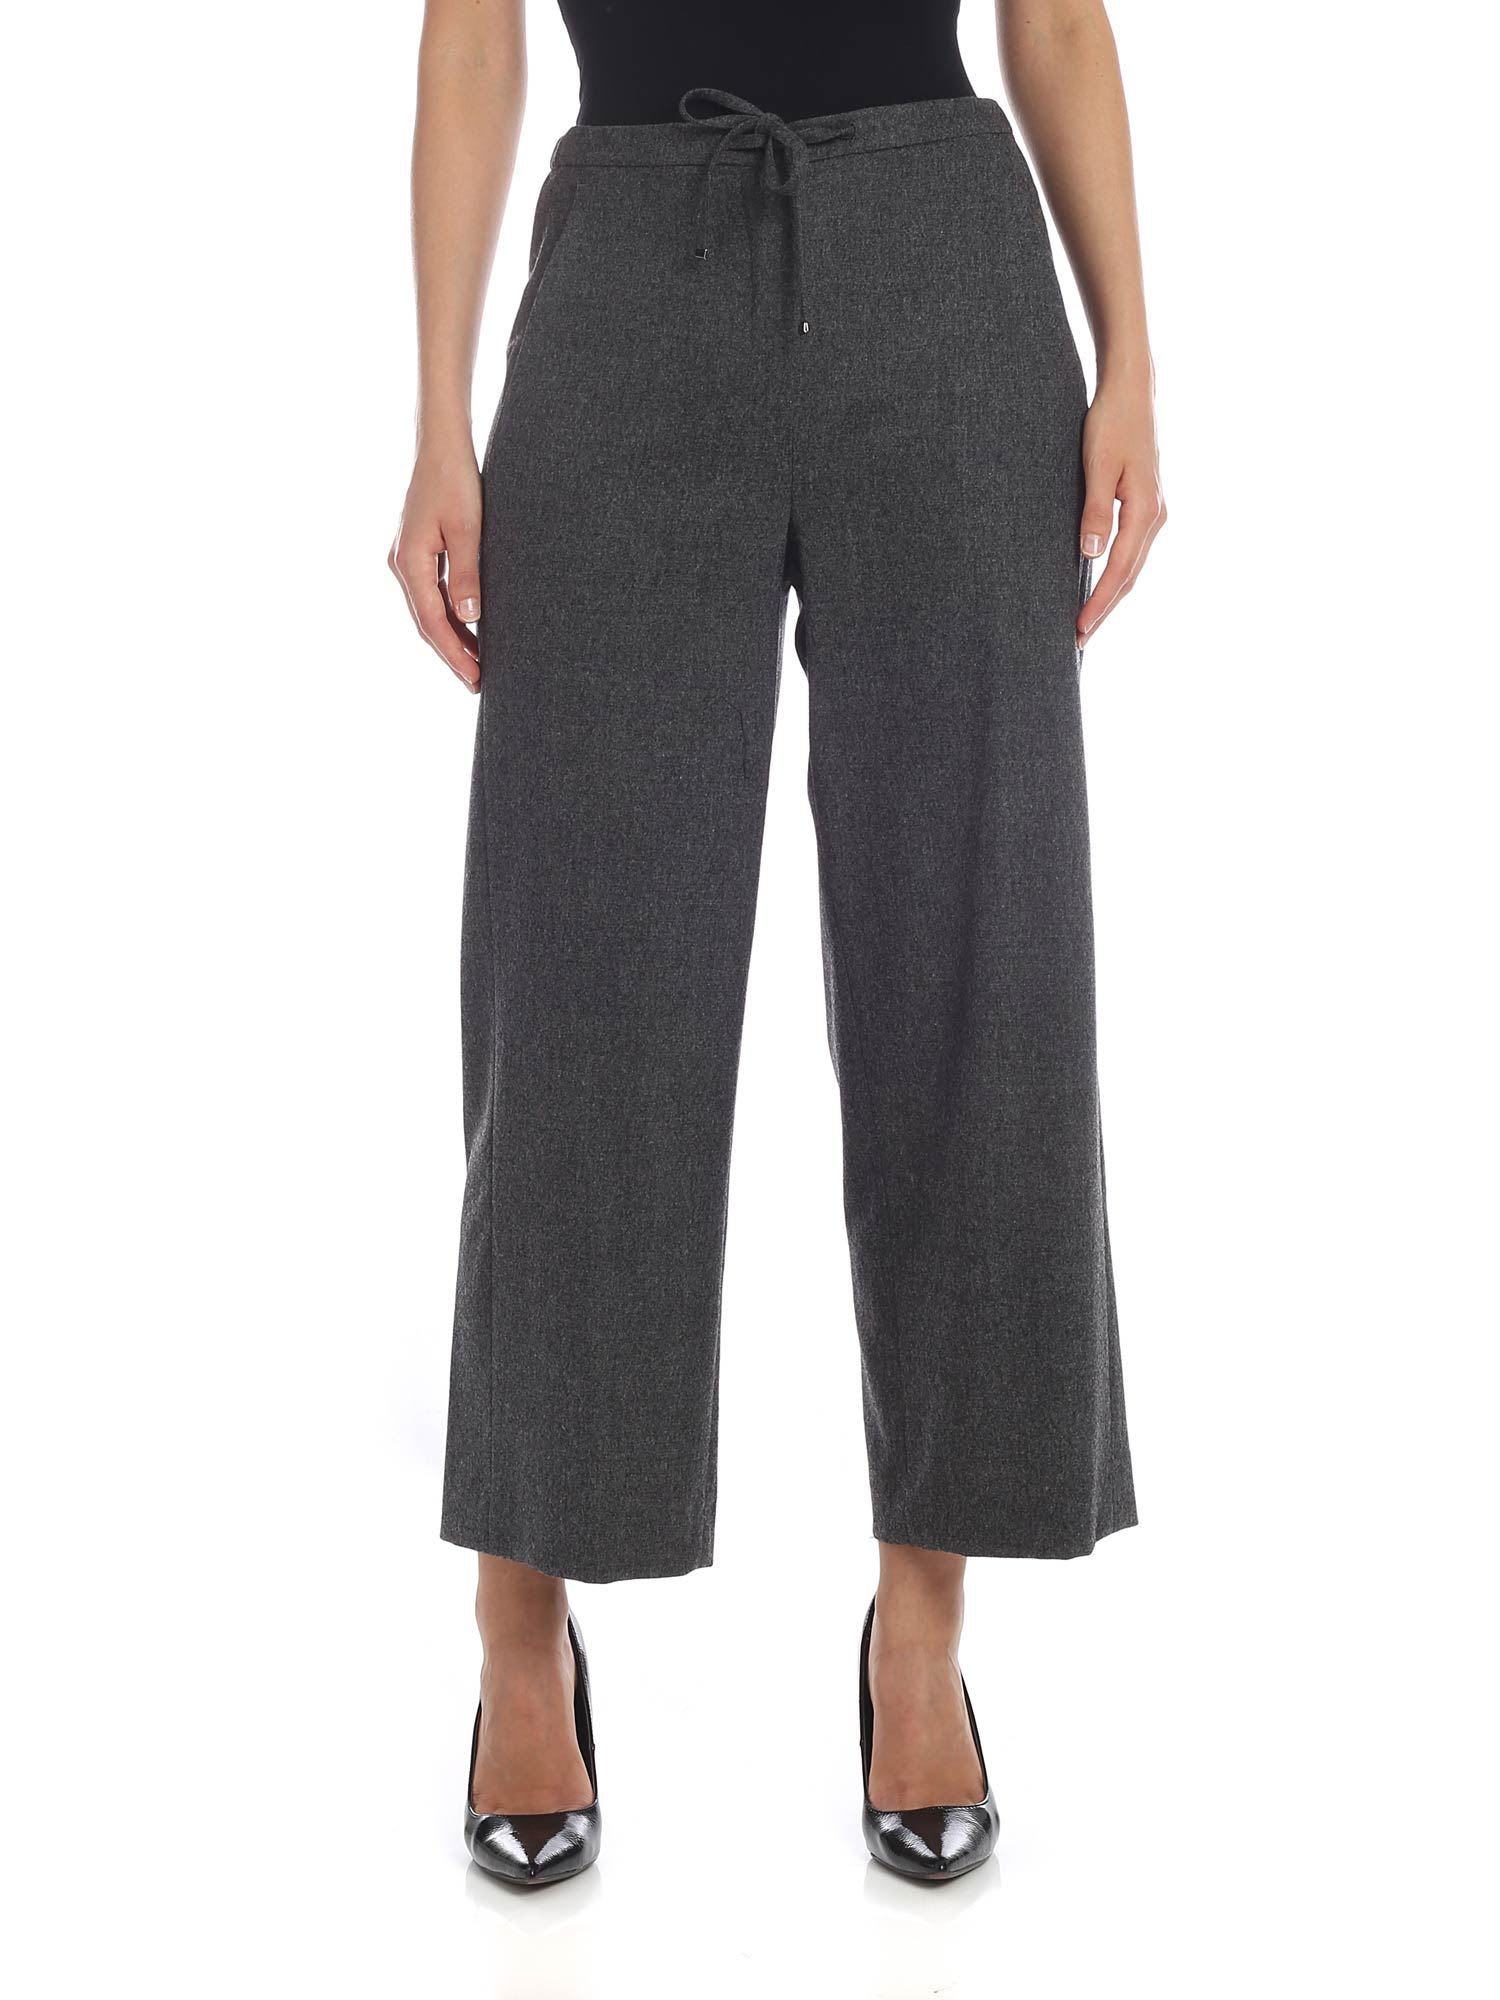 S Max Mara - Carena Trousers